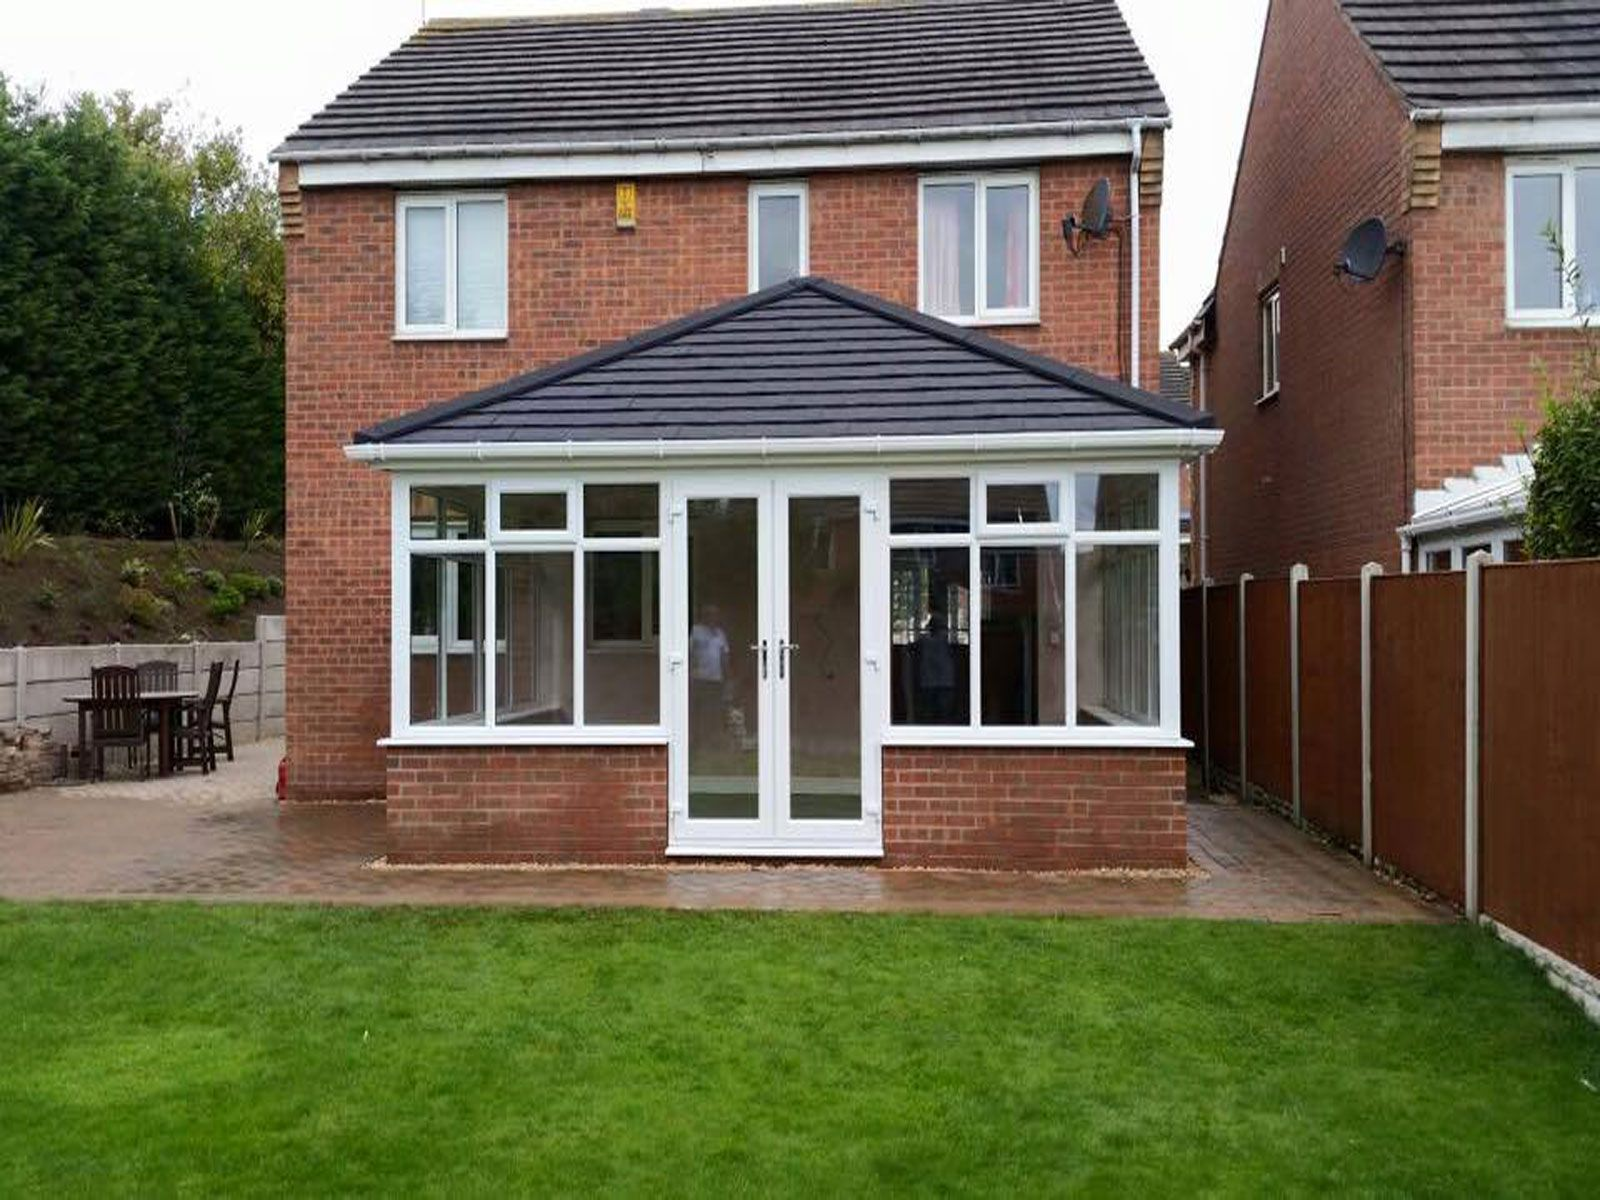 Sunrooms NI by Geoghegan   Outdoor decor, House extensions, Sunroom